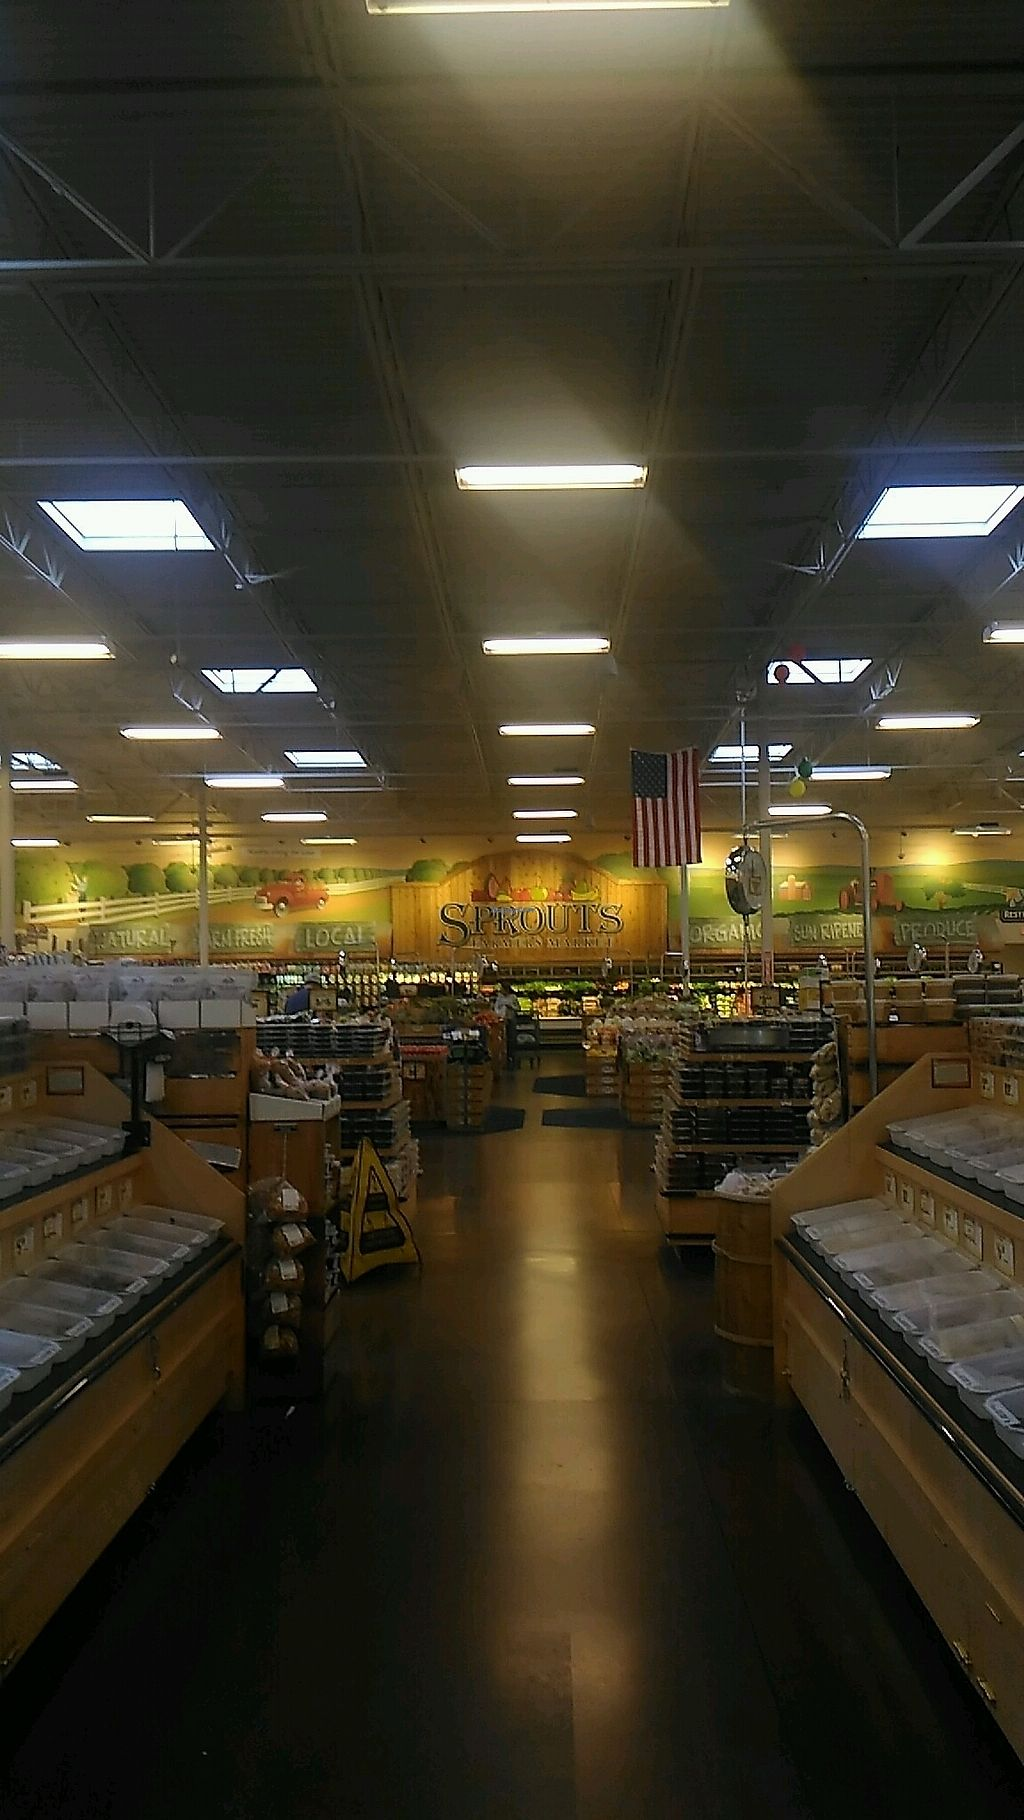 """Photo of Sprouts Farmers Market  by <a href=""""/members/profile/QuothTheRaven"""">QuothTheRaven</a> <br/>inside <br/> March 13, 2018  - <a href='/contact/abuse/image/47977/370248'>Report</a>"""